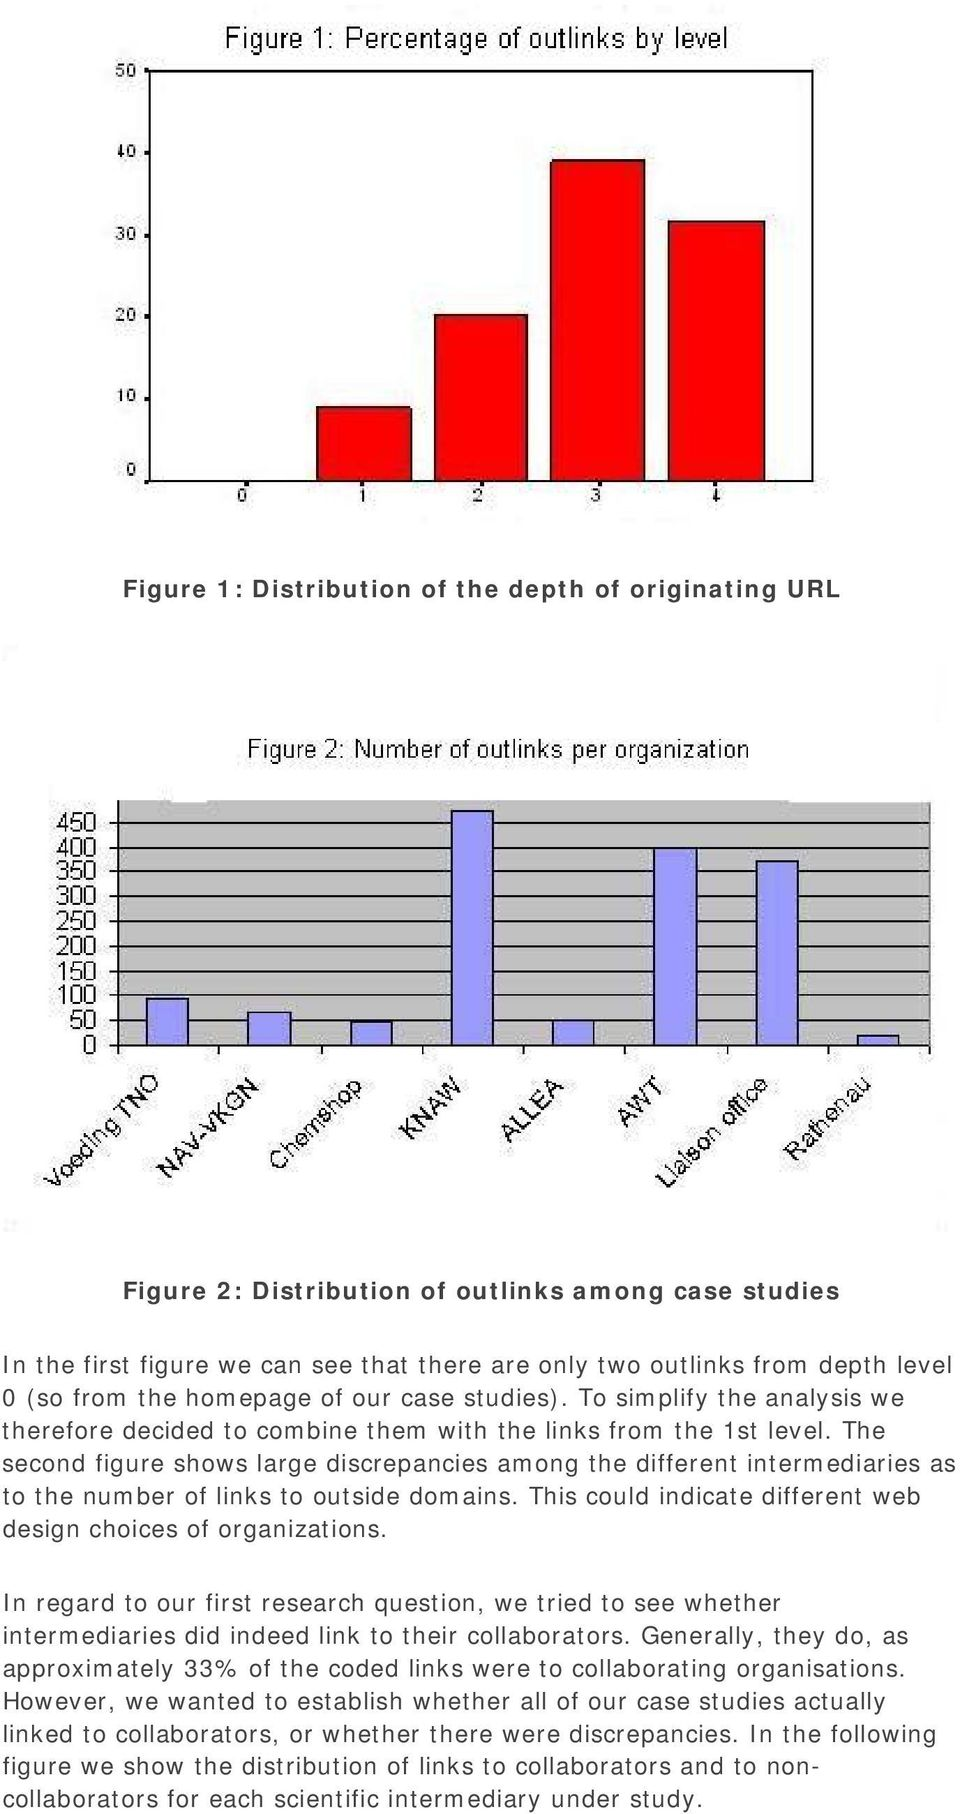 The second figure shows large discrepancies among the different intermediaries as to the number of links to outside domains. This could indicate different web design choices of organizations.